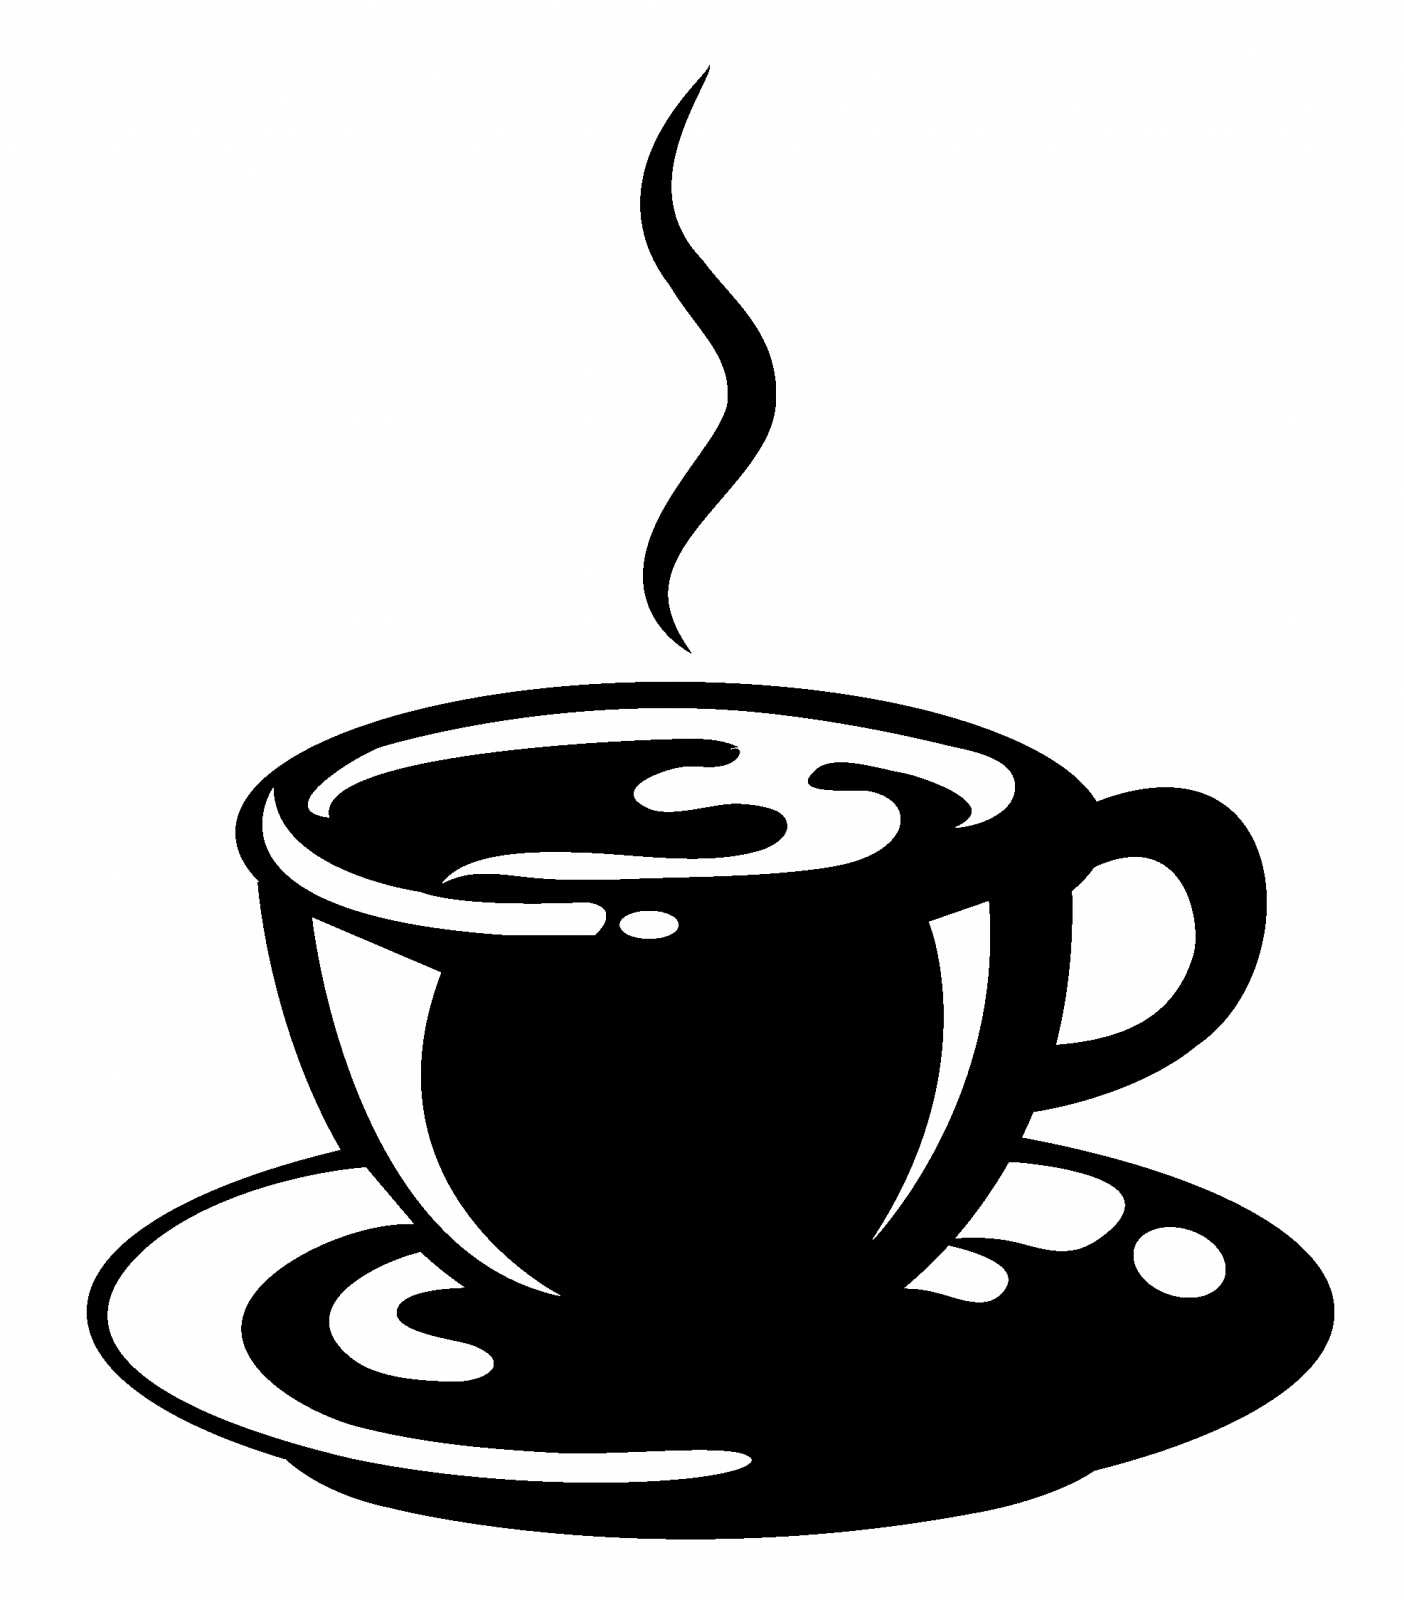 coffee cup drawings coffee cup vector graphic available for free download at drawings coffee cup